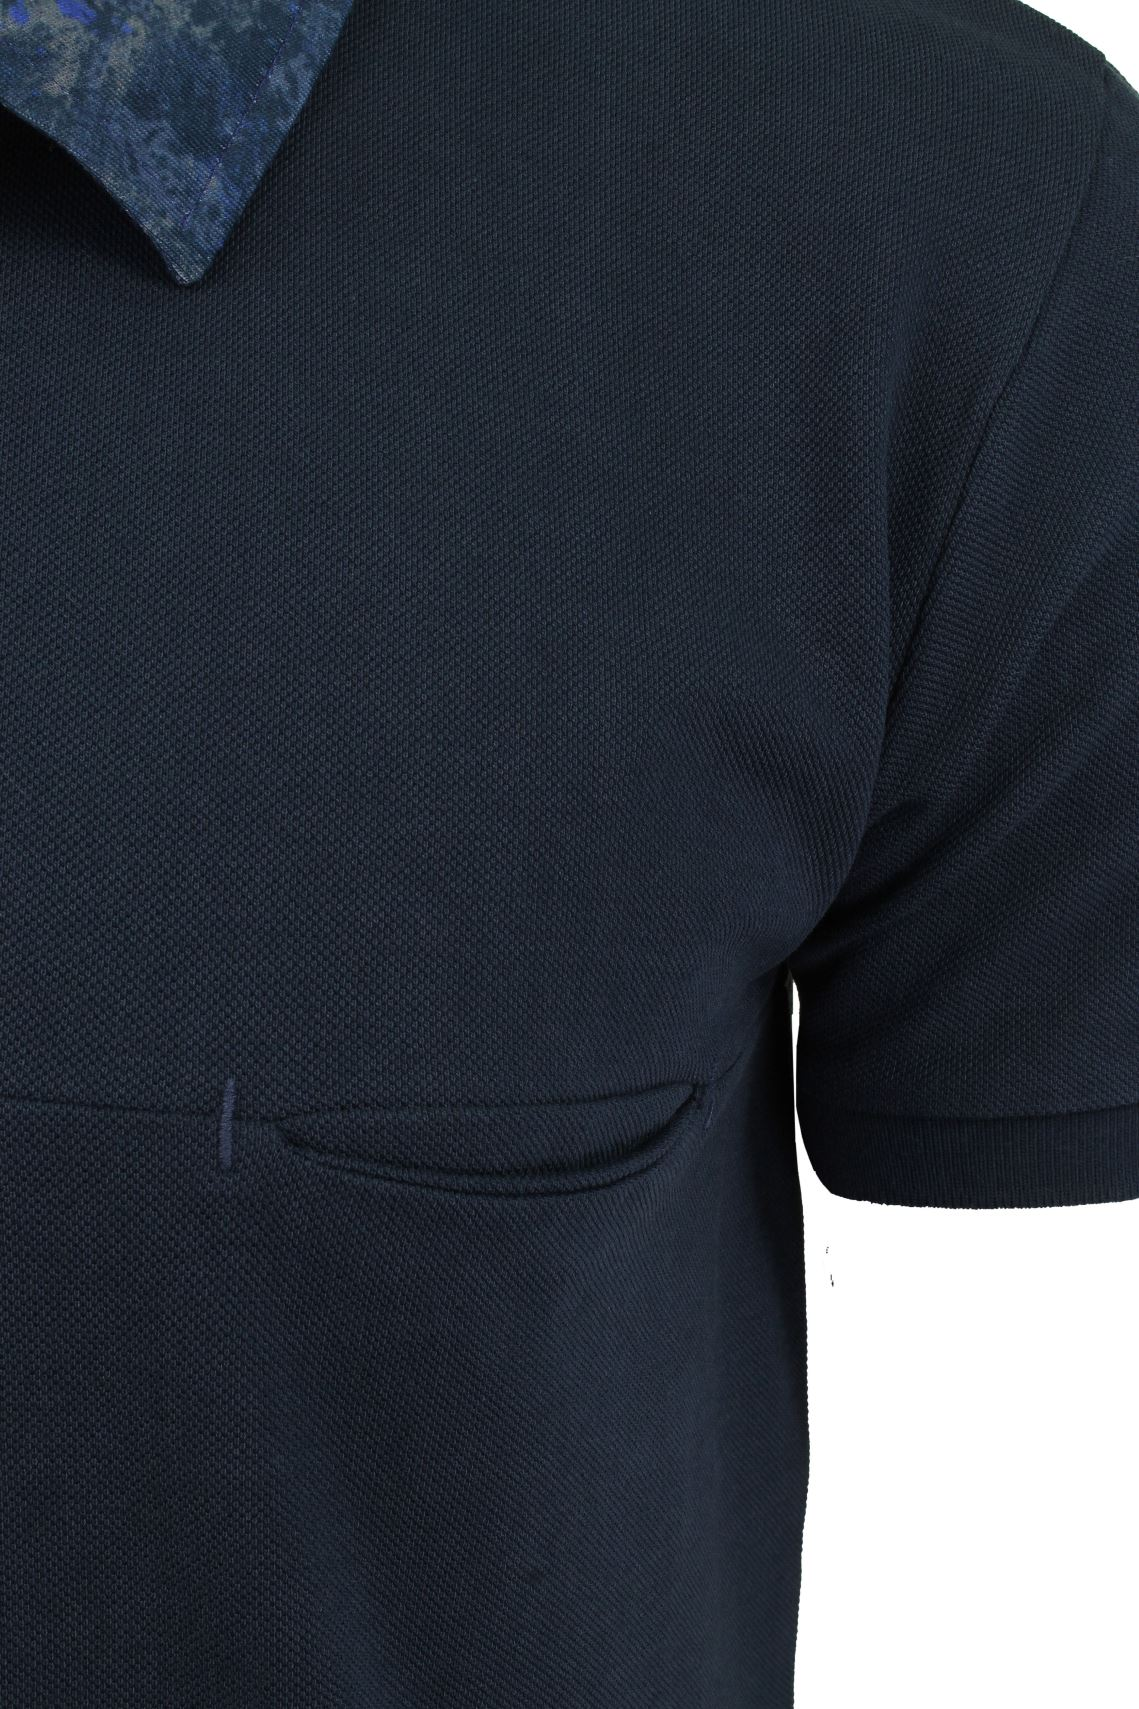 Mens-Short-Sleeved-Polo-Shirt-from-the-Blackout-Collection-by-Voi-Jeans thumbnail 12